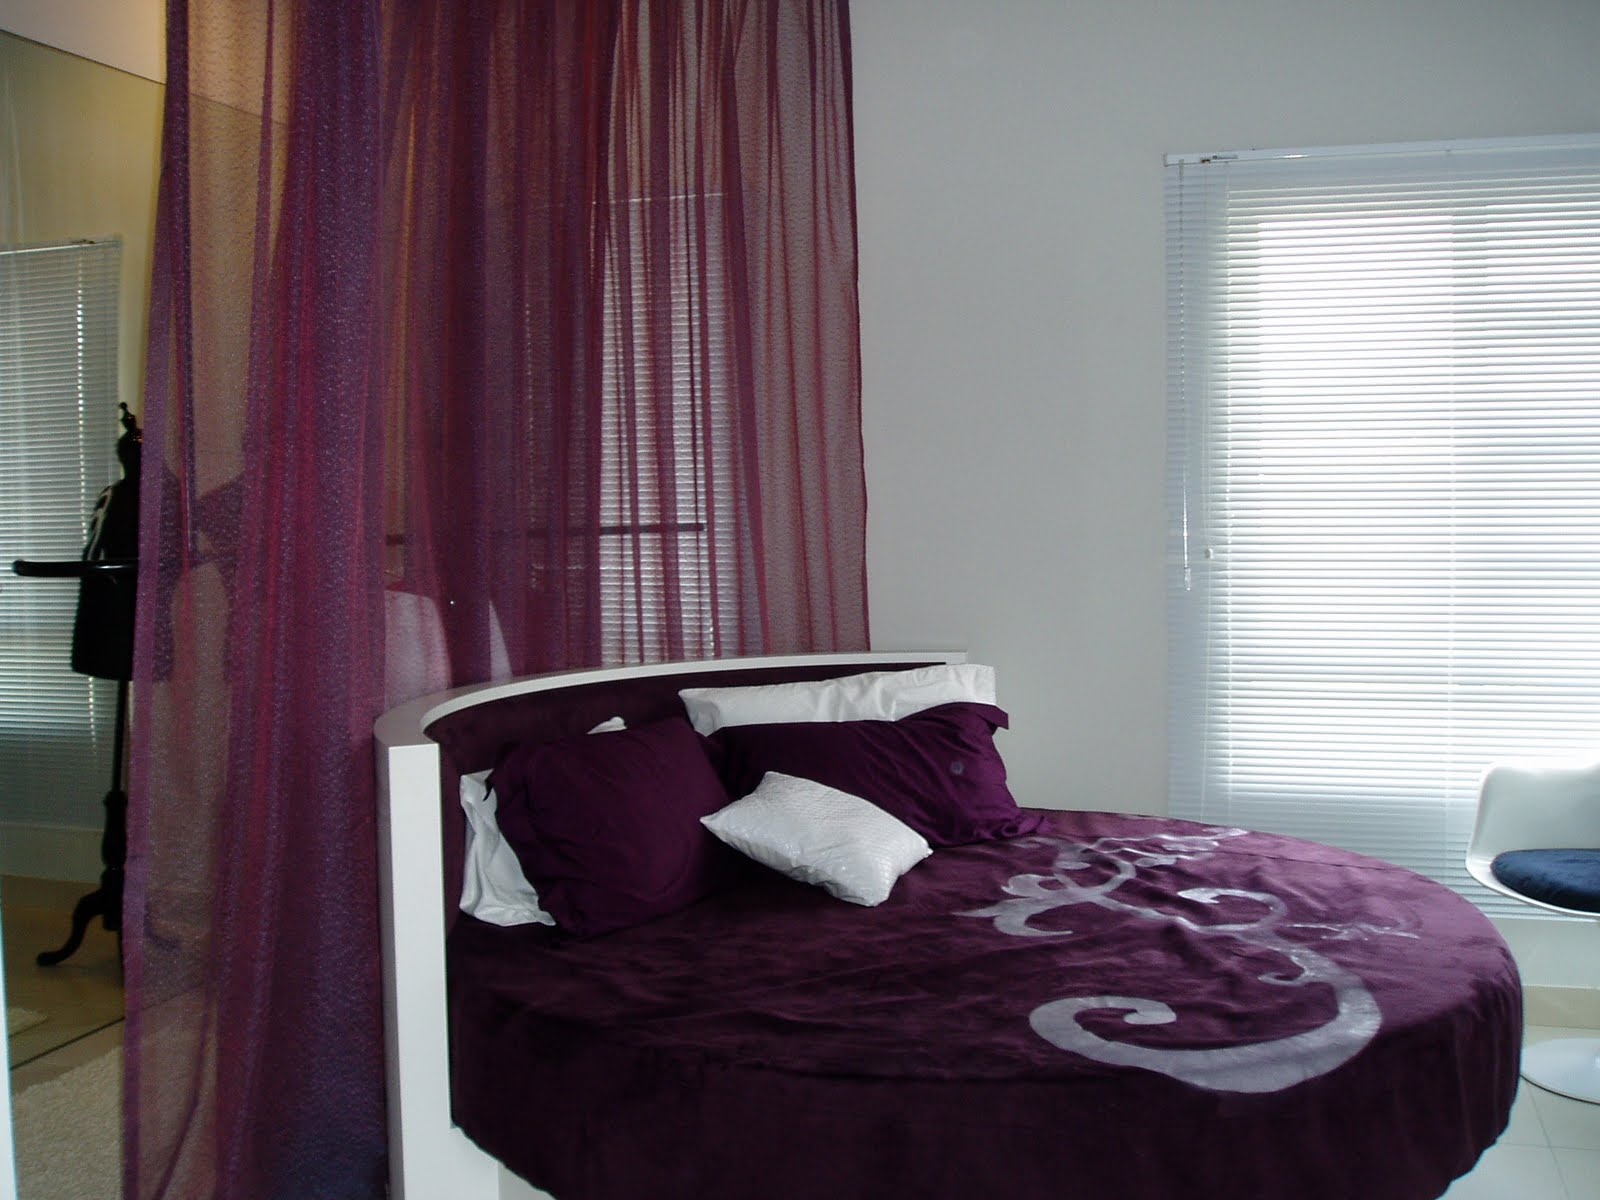 Interior design how to spice up your love life by for Declutter bedroom ideas